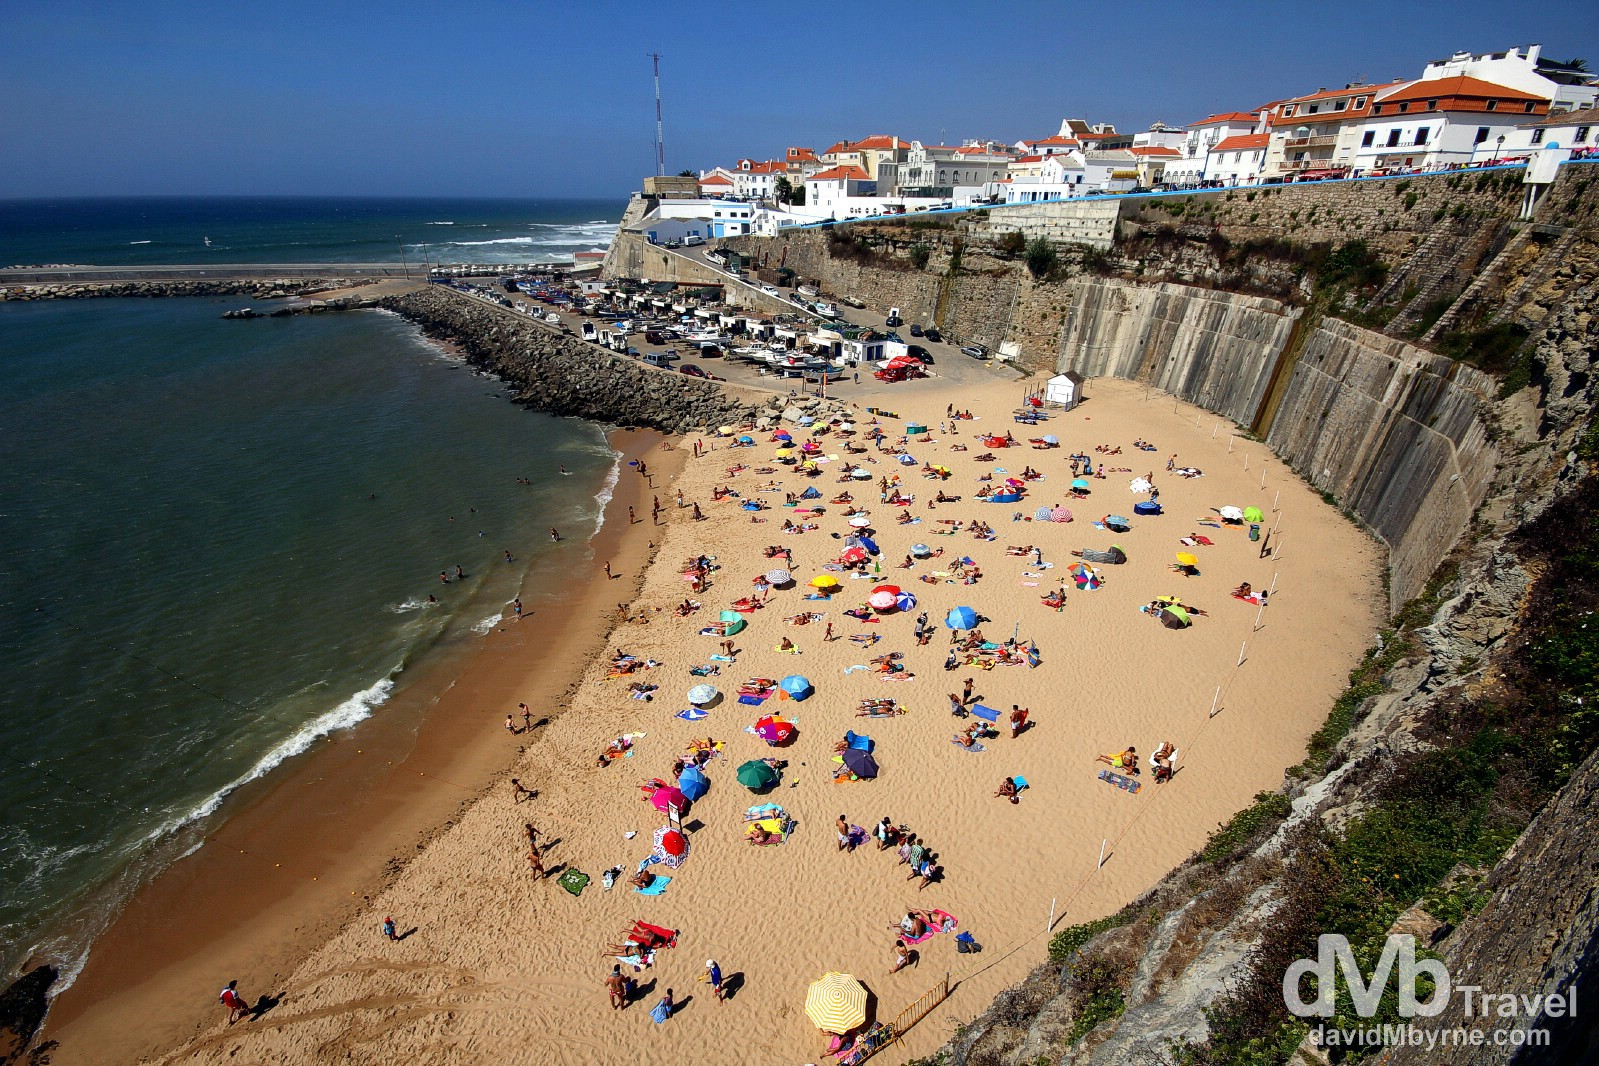 Praia dos Pescadores (Fisherman's Beach) in Ericeira, Mafra, Portugal. August 24th 2013.